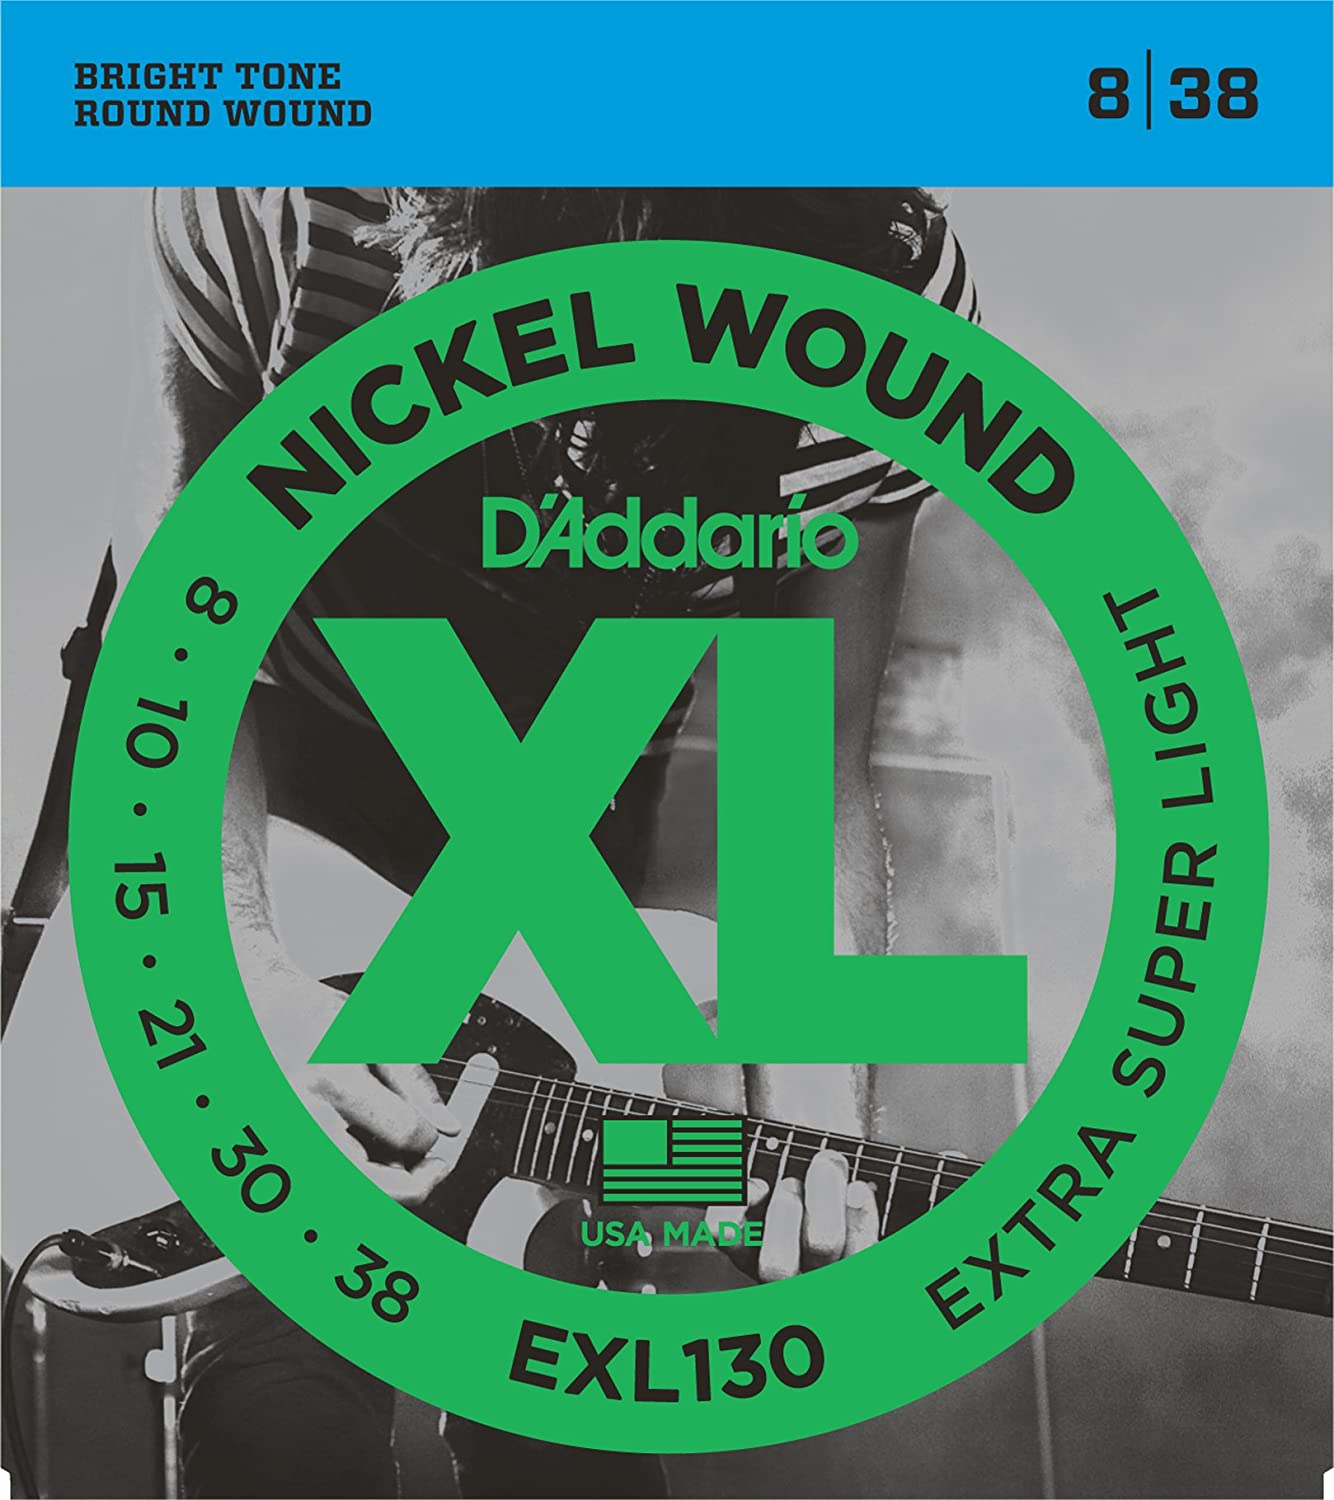 Round Wound with Nickel-Plated Steel for Long Lasting Distinctive Bright Tone and Excellent Intonation D/'Addario XL Nickel Wound Electric Guitar Strings Medium Blues Jazz Rock Gauge 11-49 10 Sets